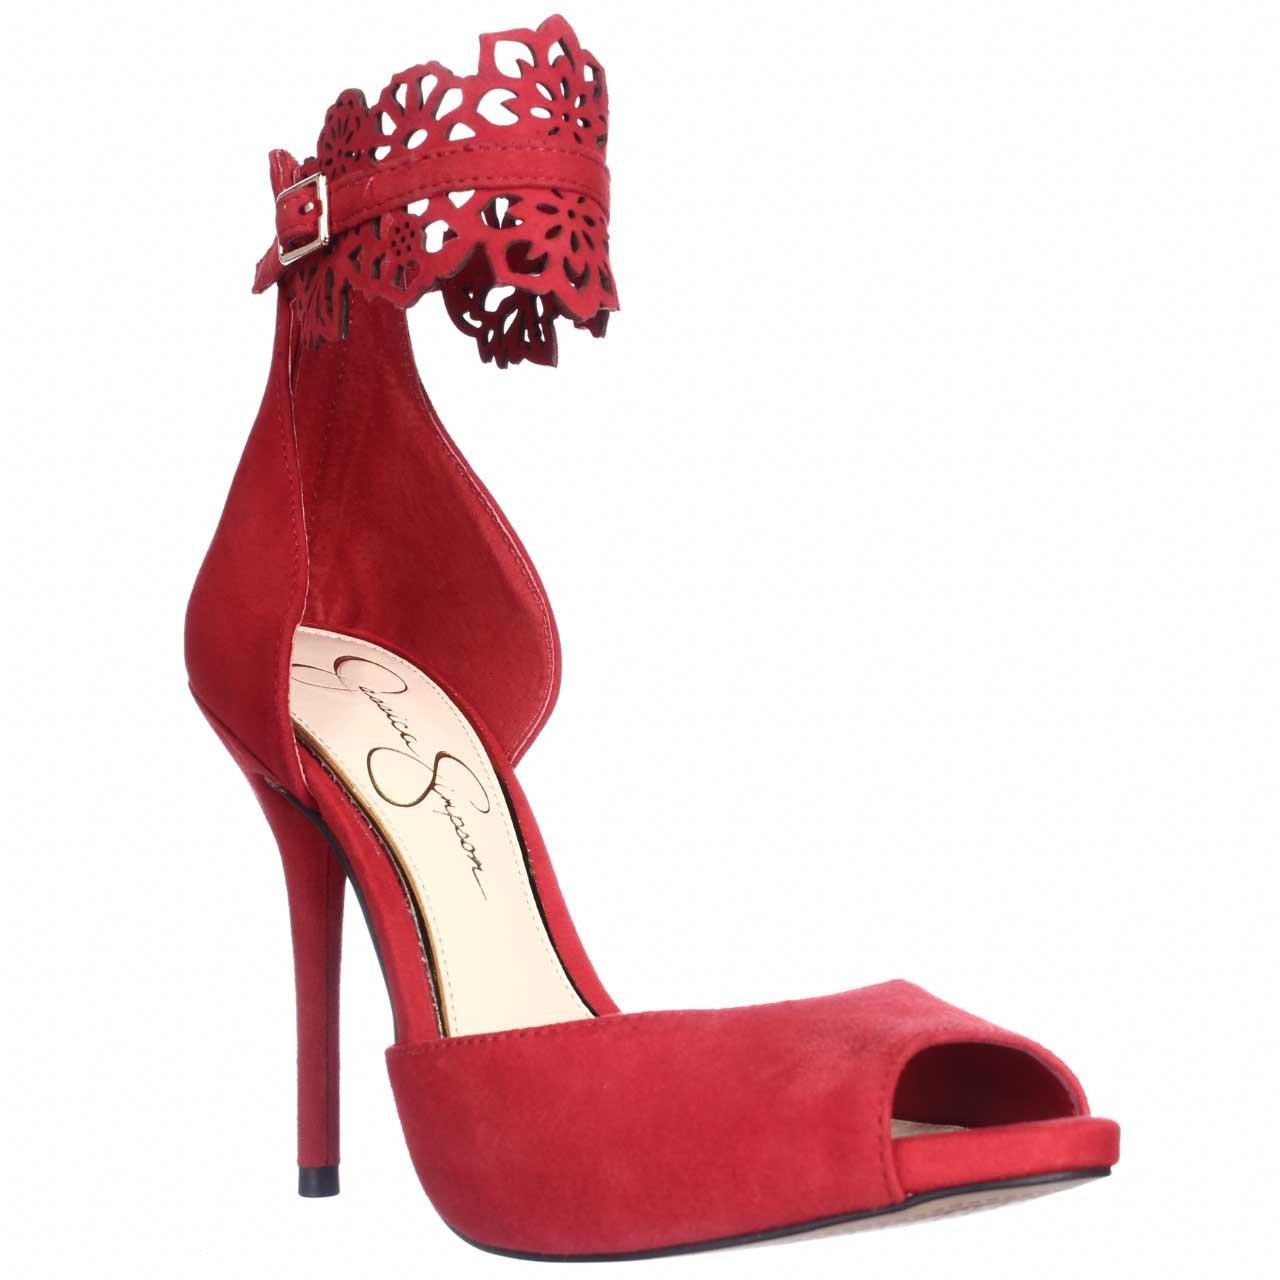 Jessica simpson Bonney Ankle-strap Heels in Red | Lyst